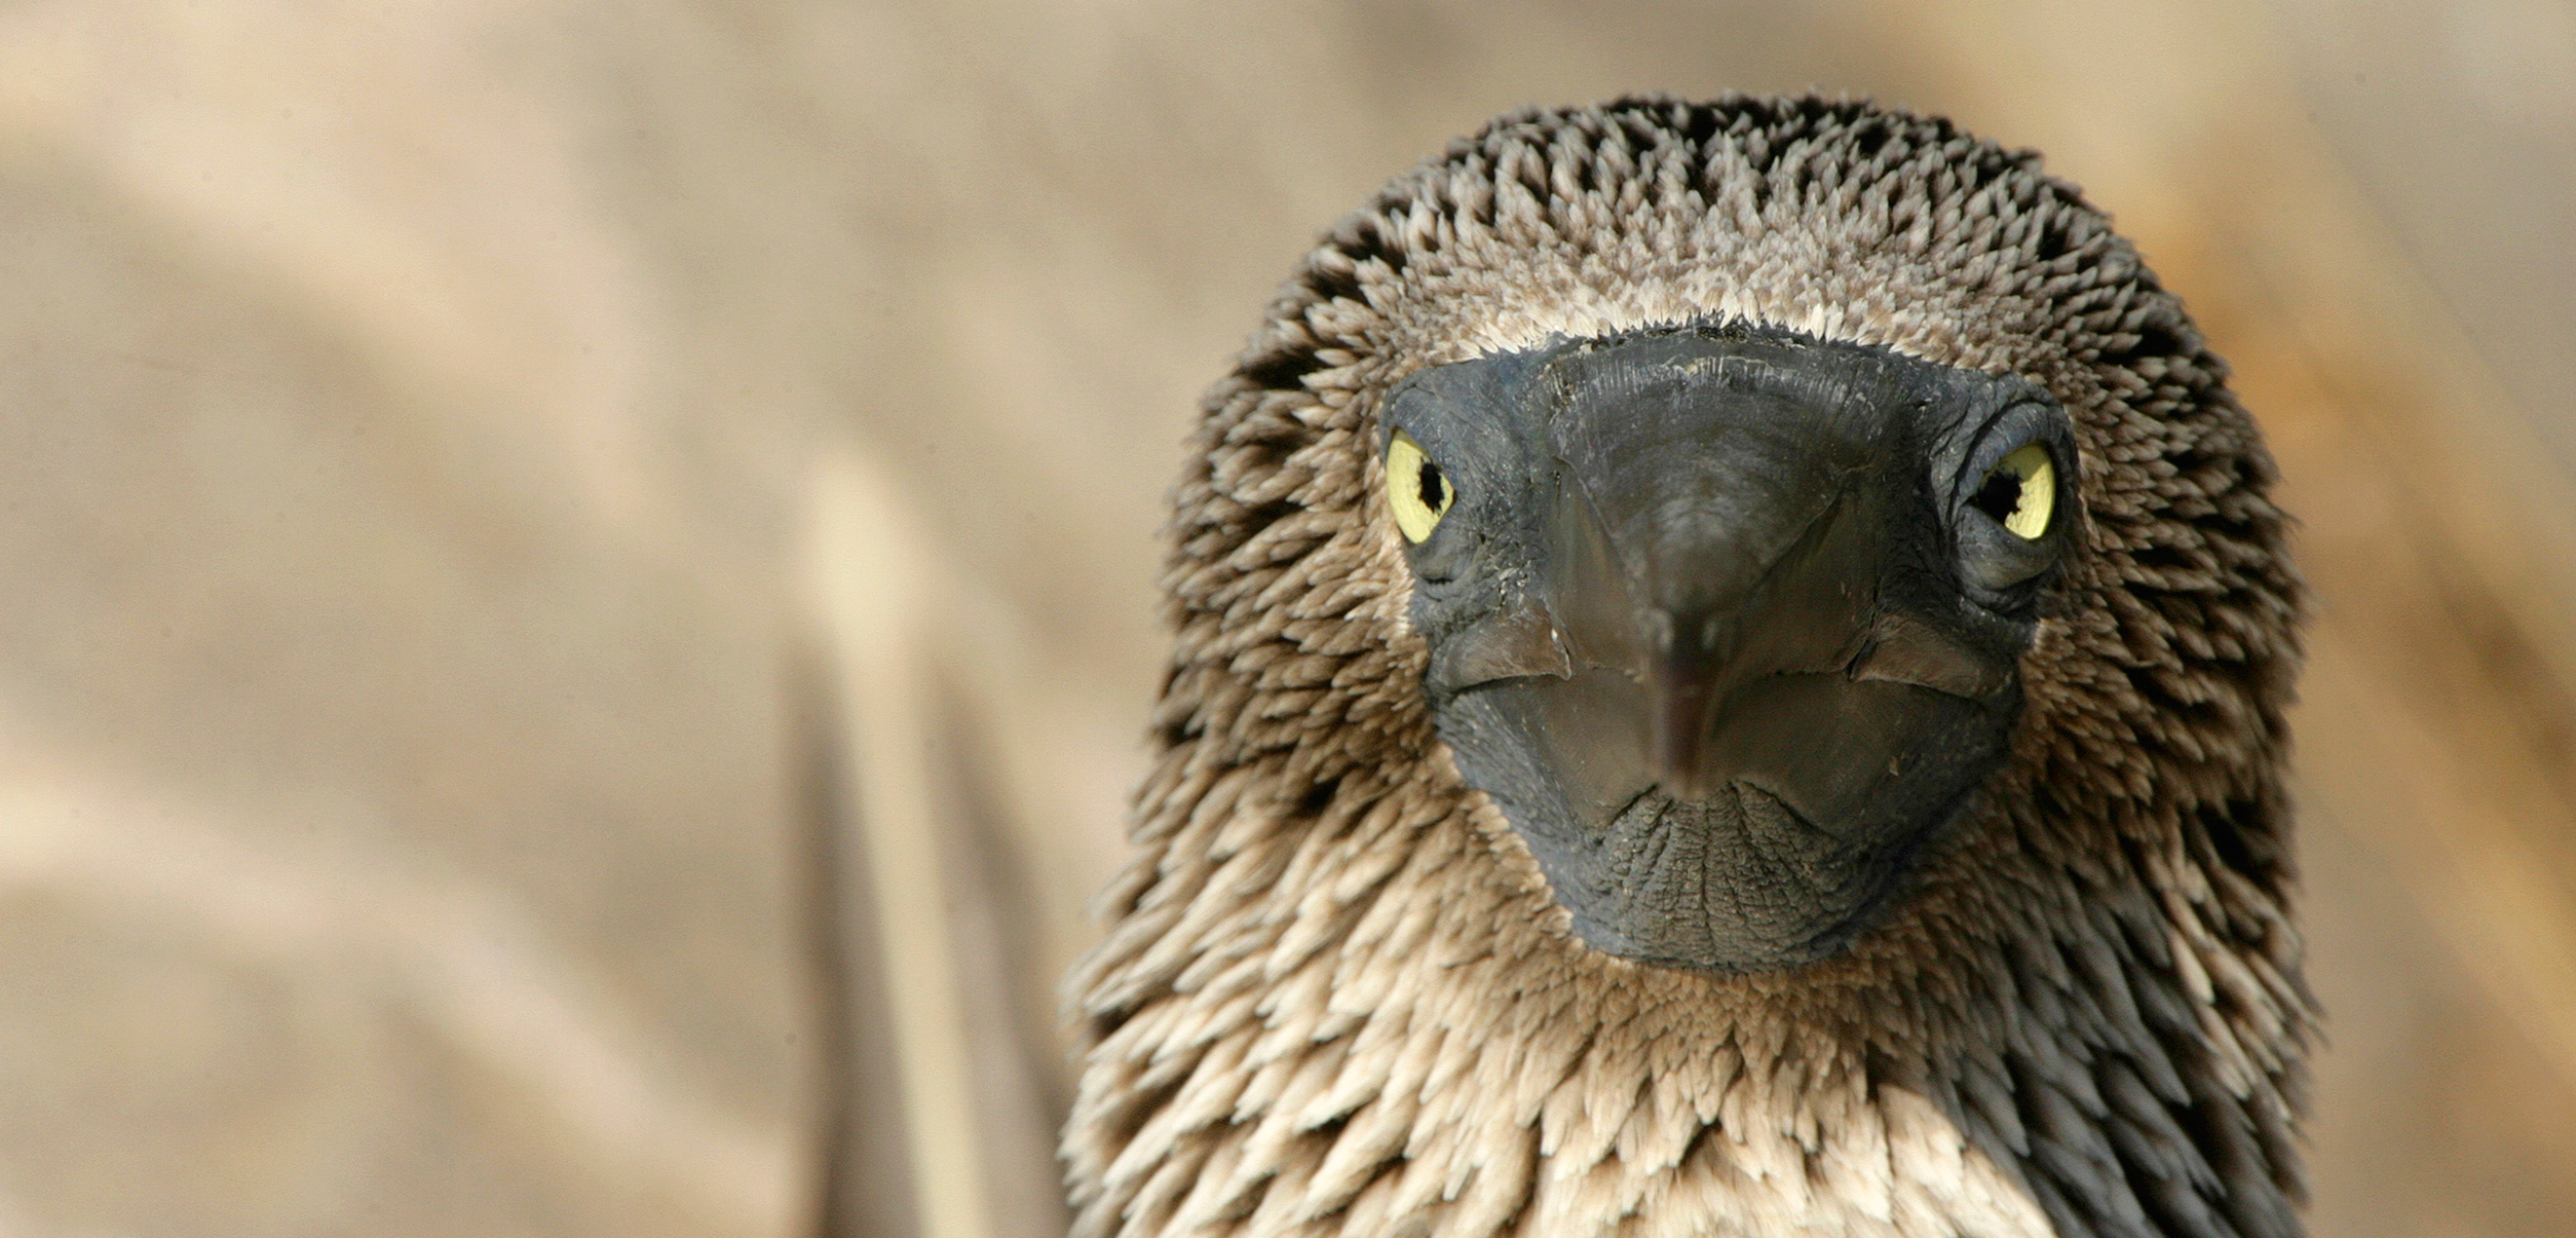 The blue-footed booby may seem comical on land, but it has a sinister side. Photo by David Fettes/Corbis